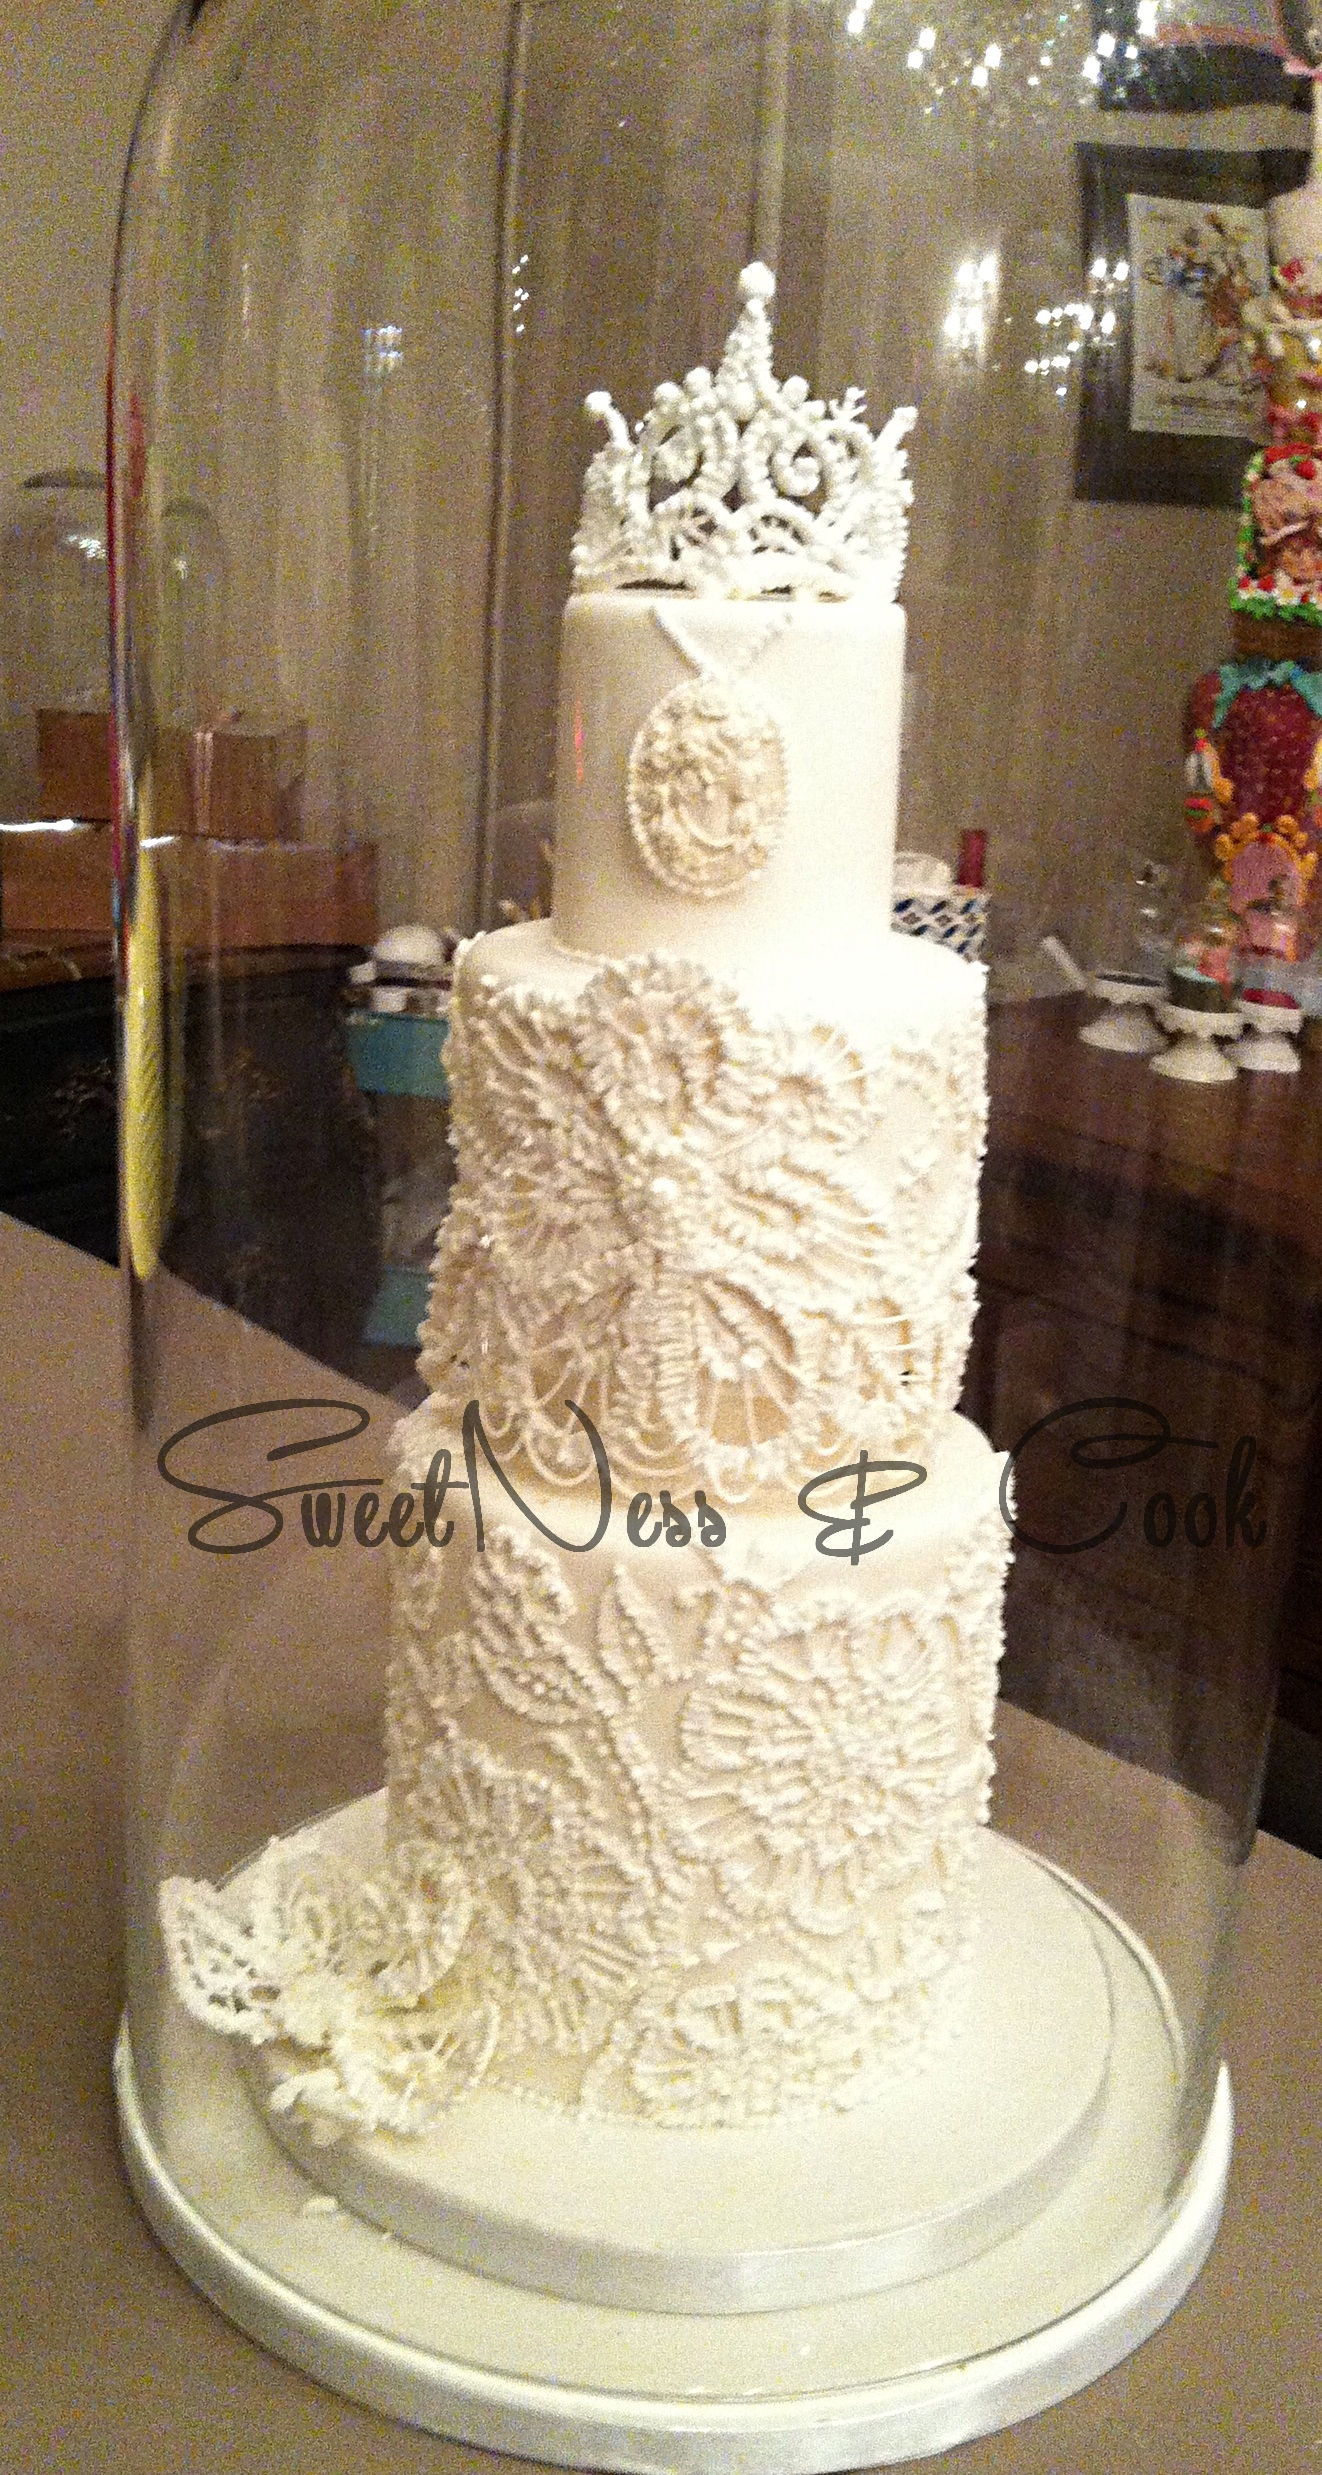 Wedding Cake dentelles glace royale